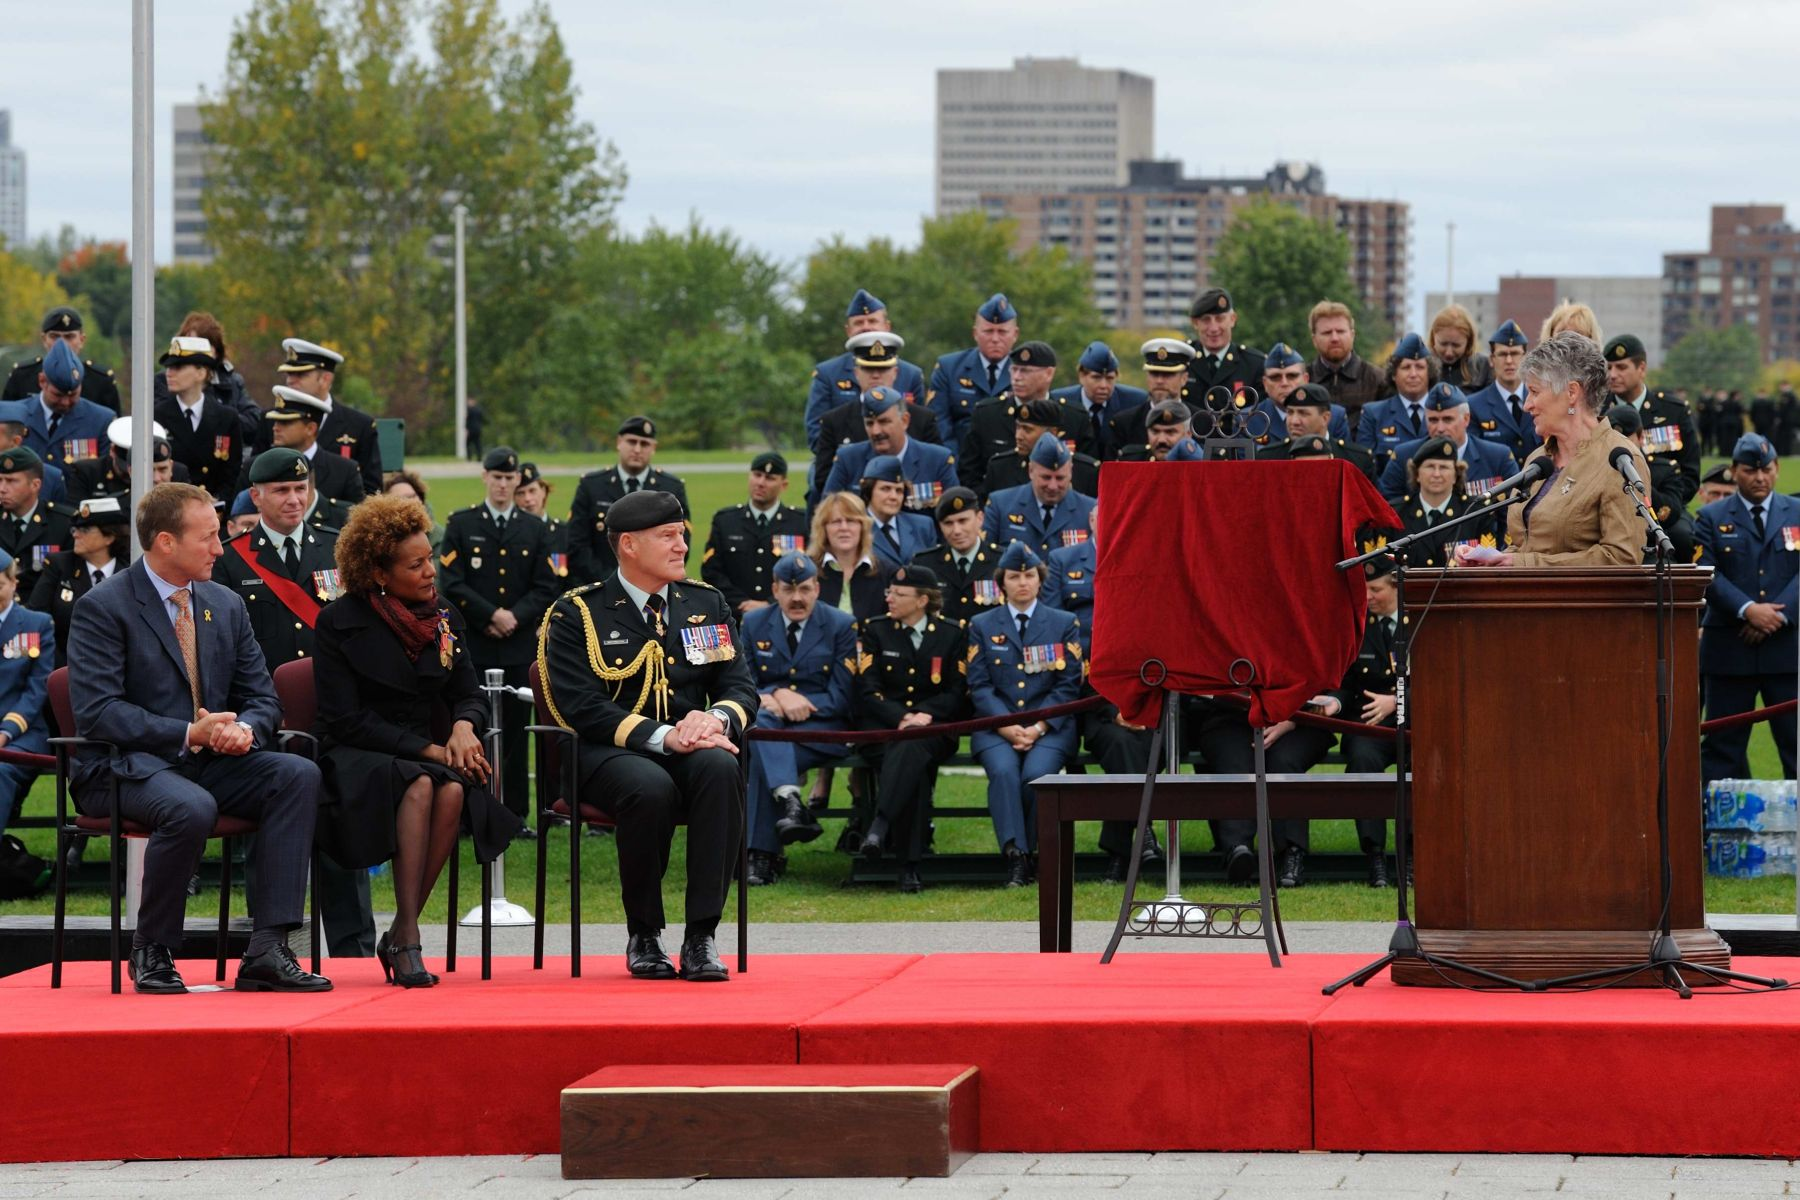 Silver Cross Mother Mrs. Della Marie Morley also addressed Her Excellency during the military ceremony.